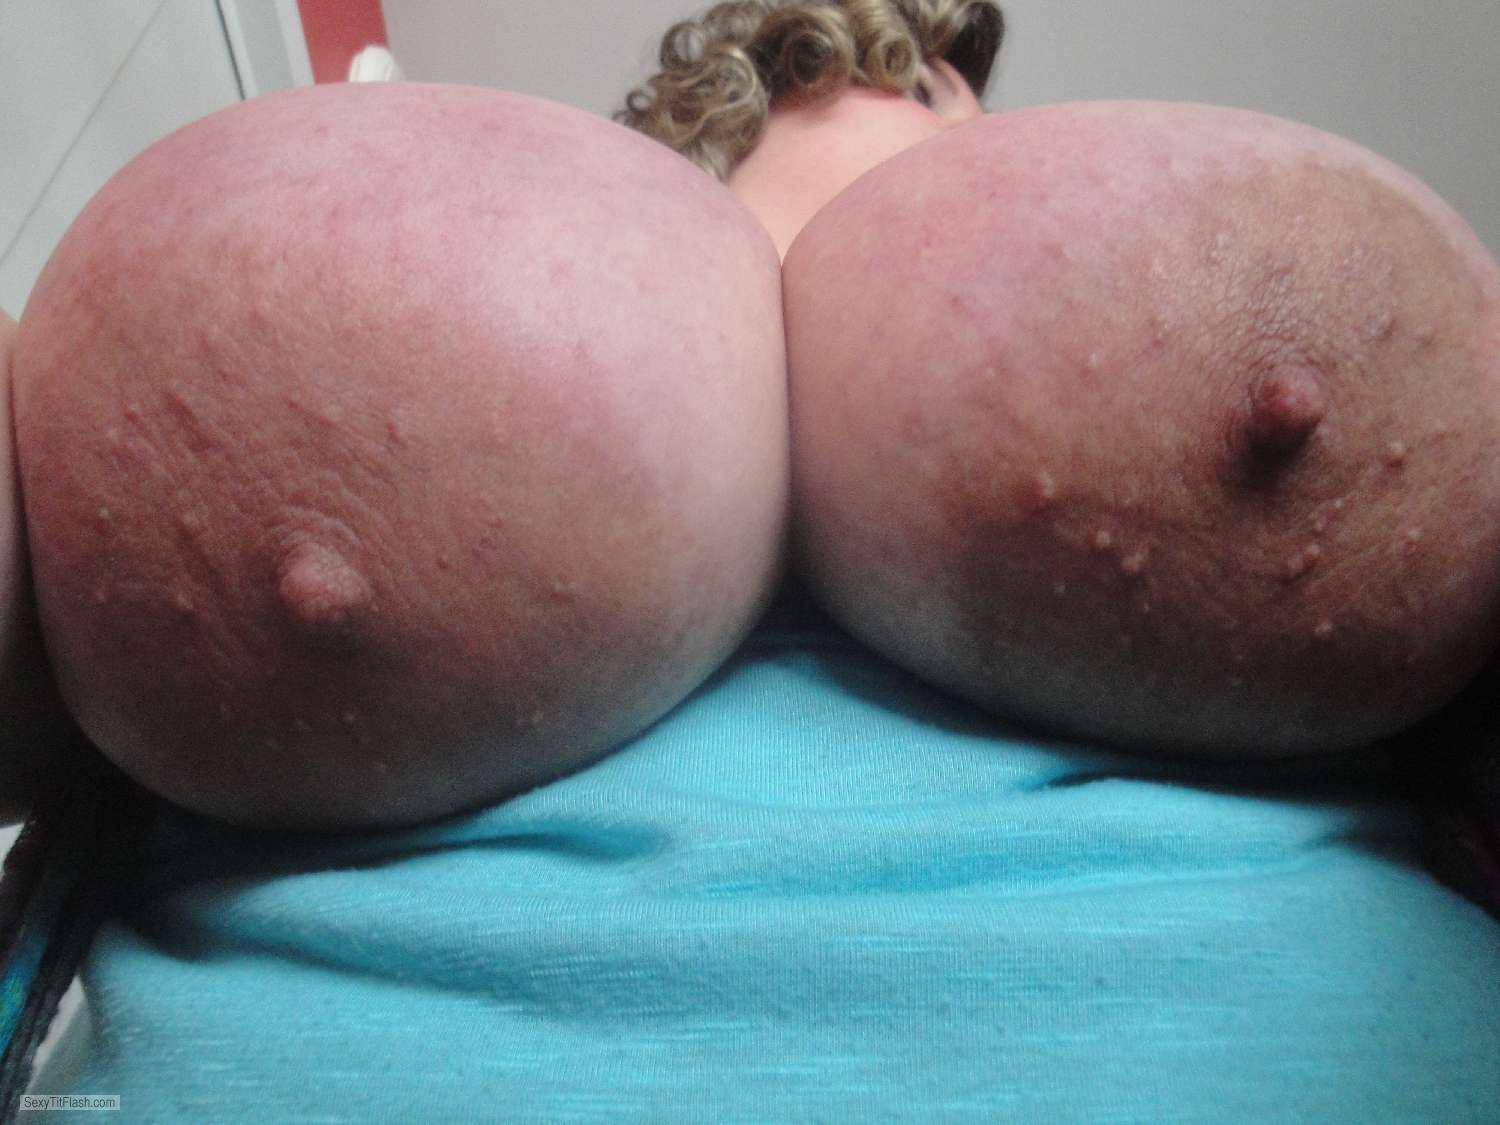 My Extremely big Tits Selfie by Mandy6980